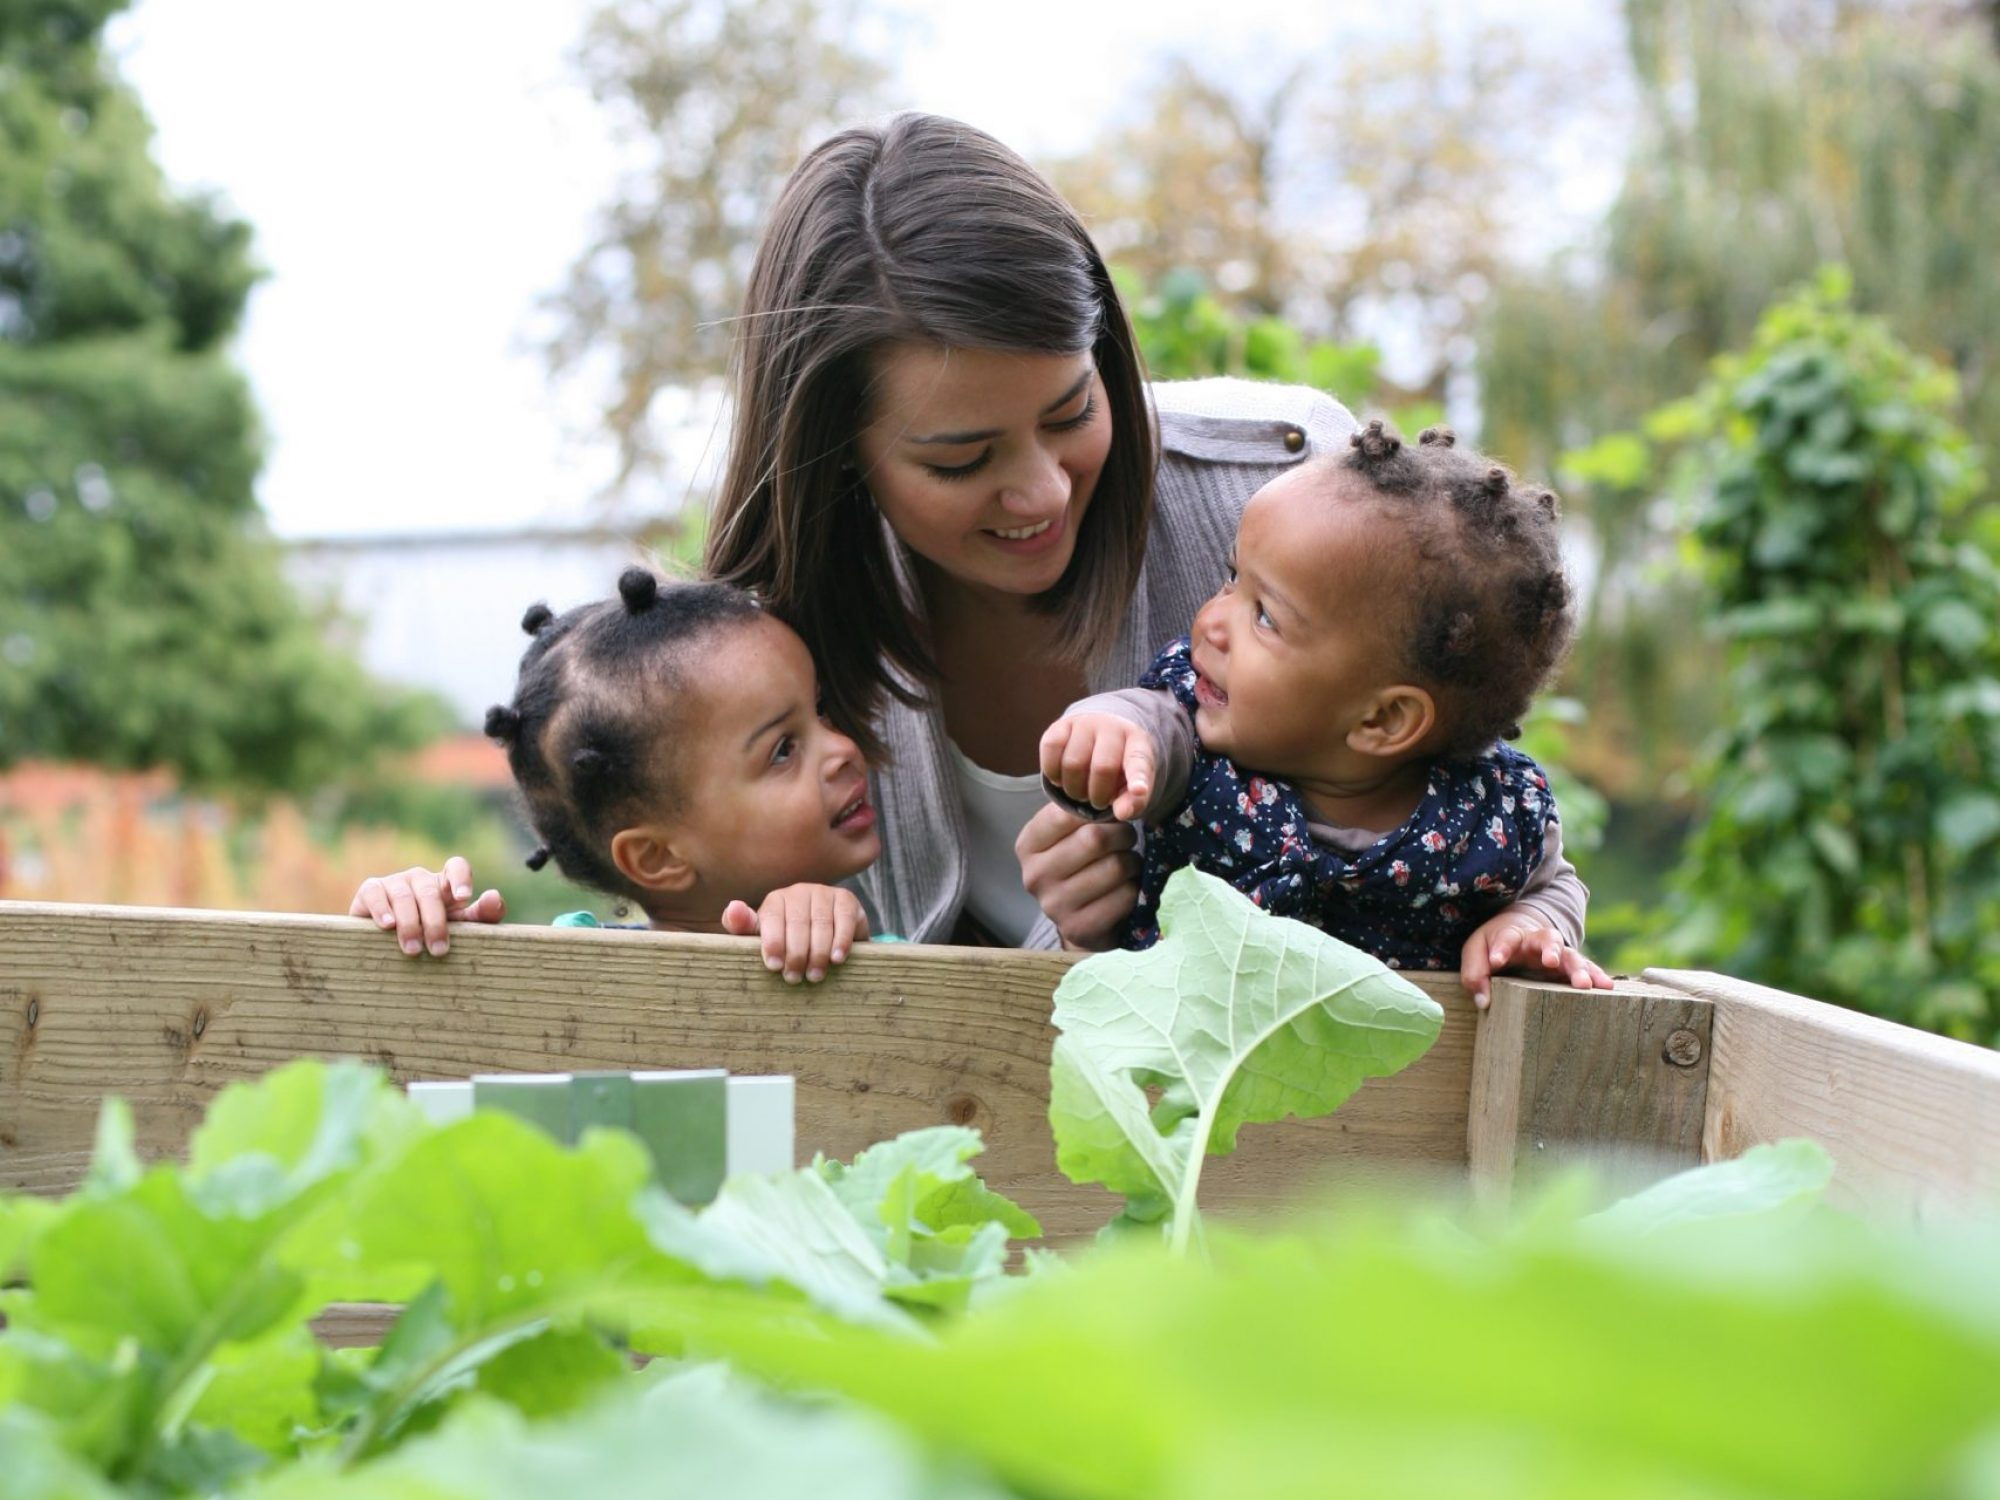 A woman and two small children are looking over a wooden edge of a flower bed towards large green leafy plants, in a Garden.